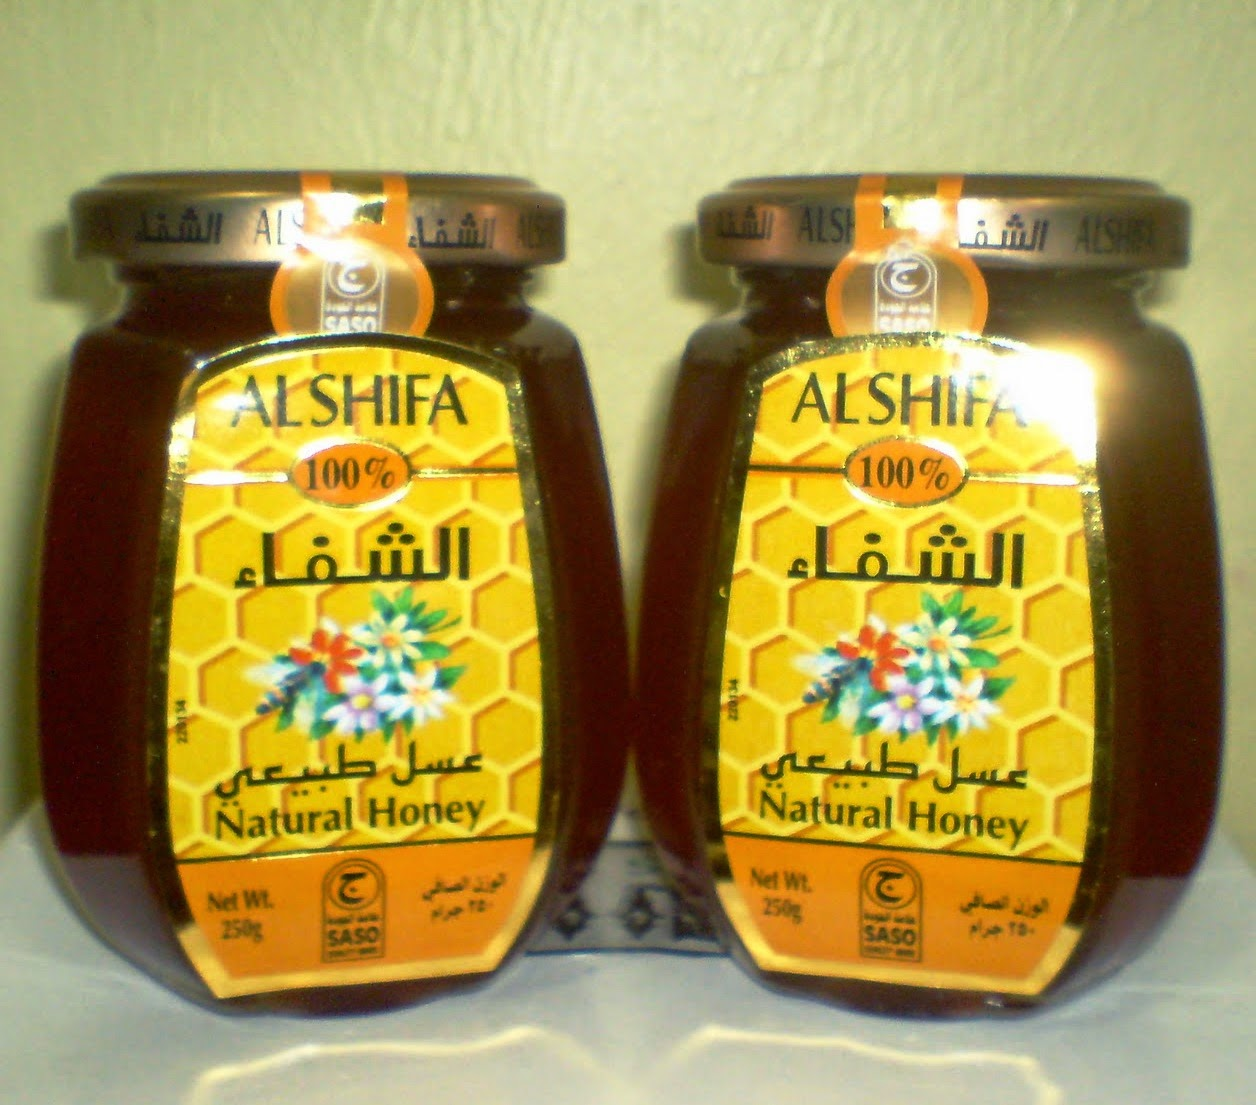 Madu Arab Al Shifa Natural Honey 125 gr Andiherbal.com